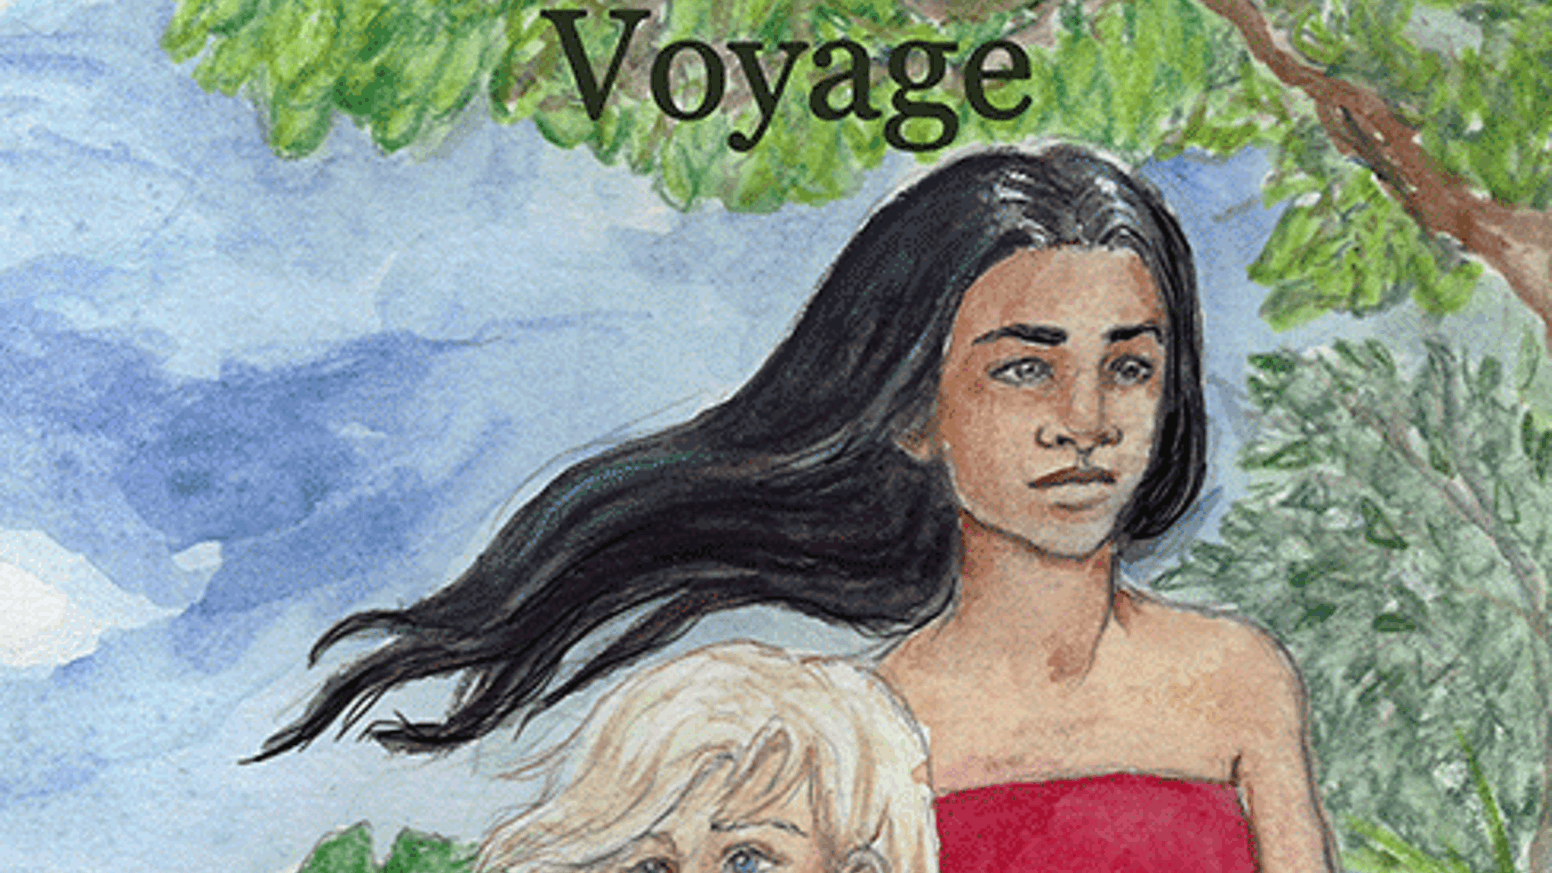 A fantasy adventure story about archaeologists, vicious pirates, misplaced immortals, and a rescue mission to southern islands.